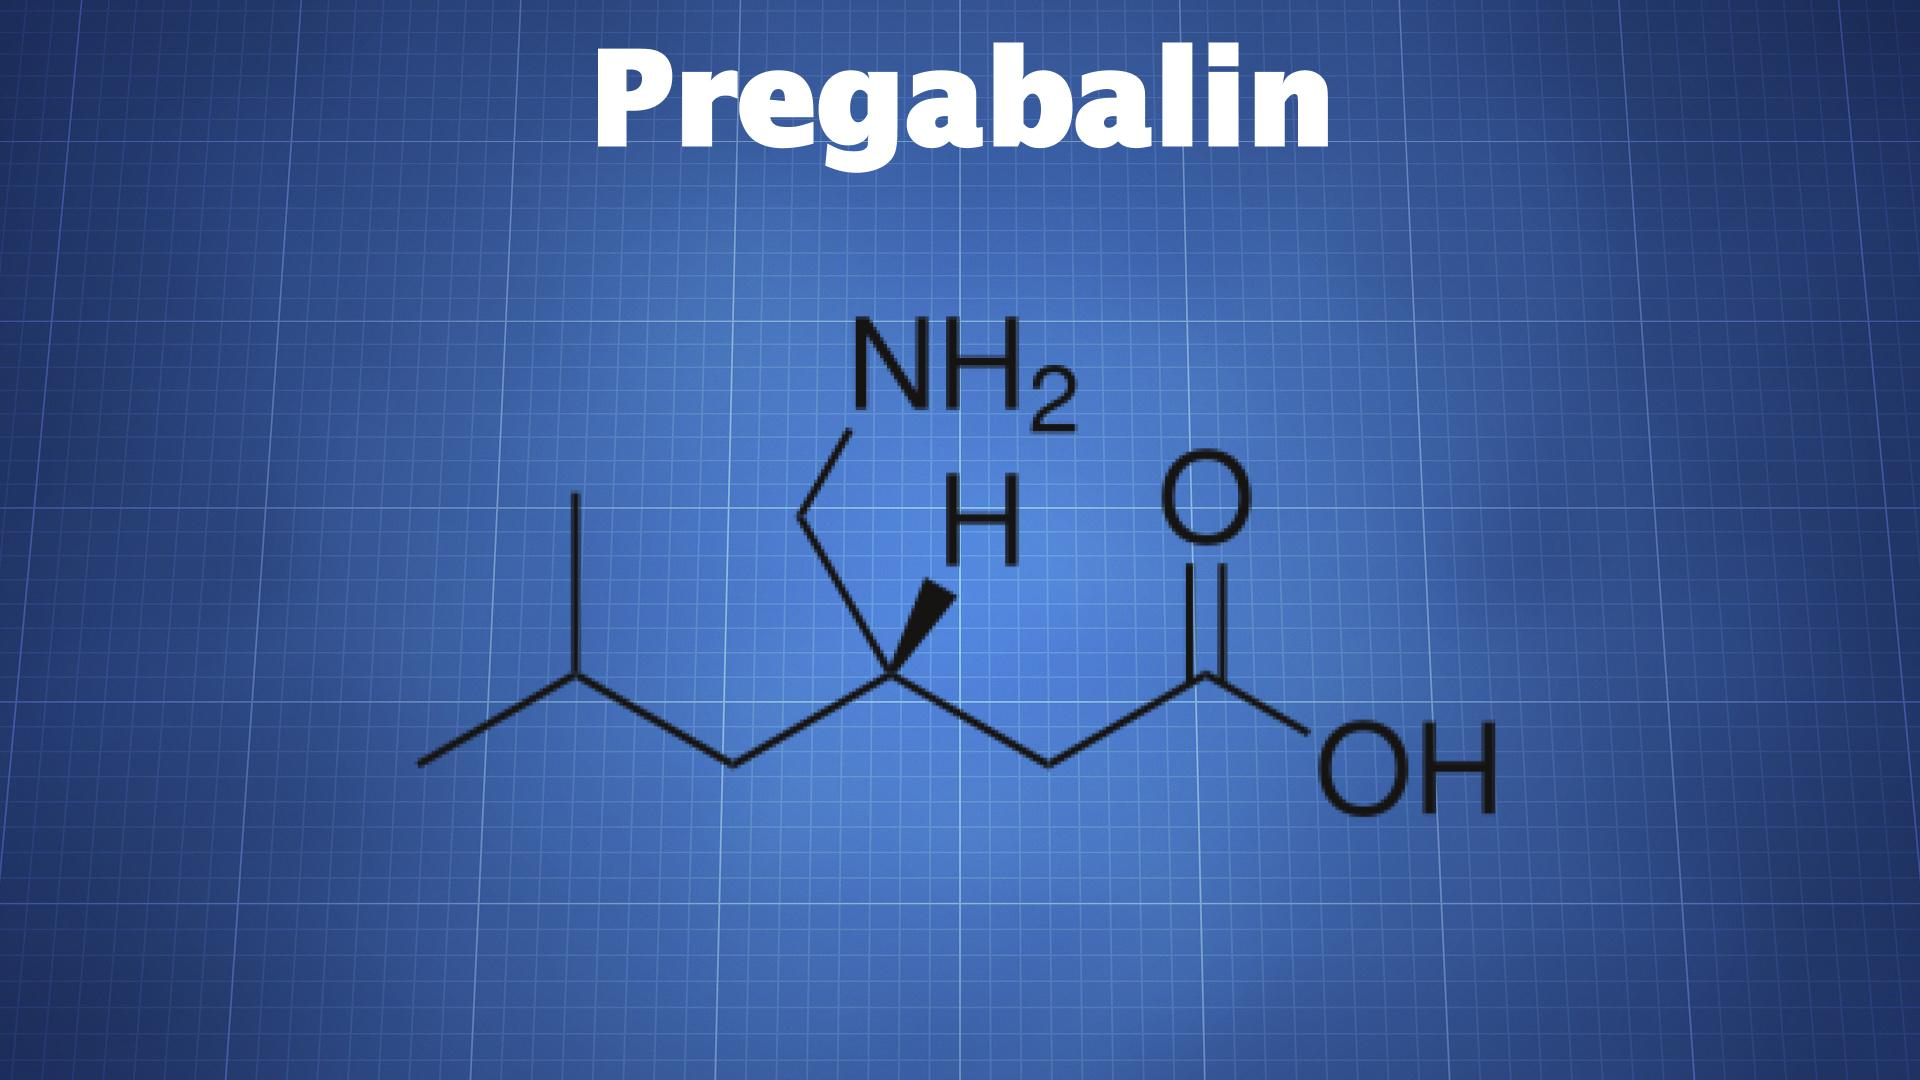 Pregabalin - The Drug Classroom